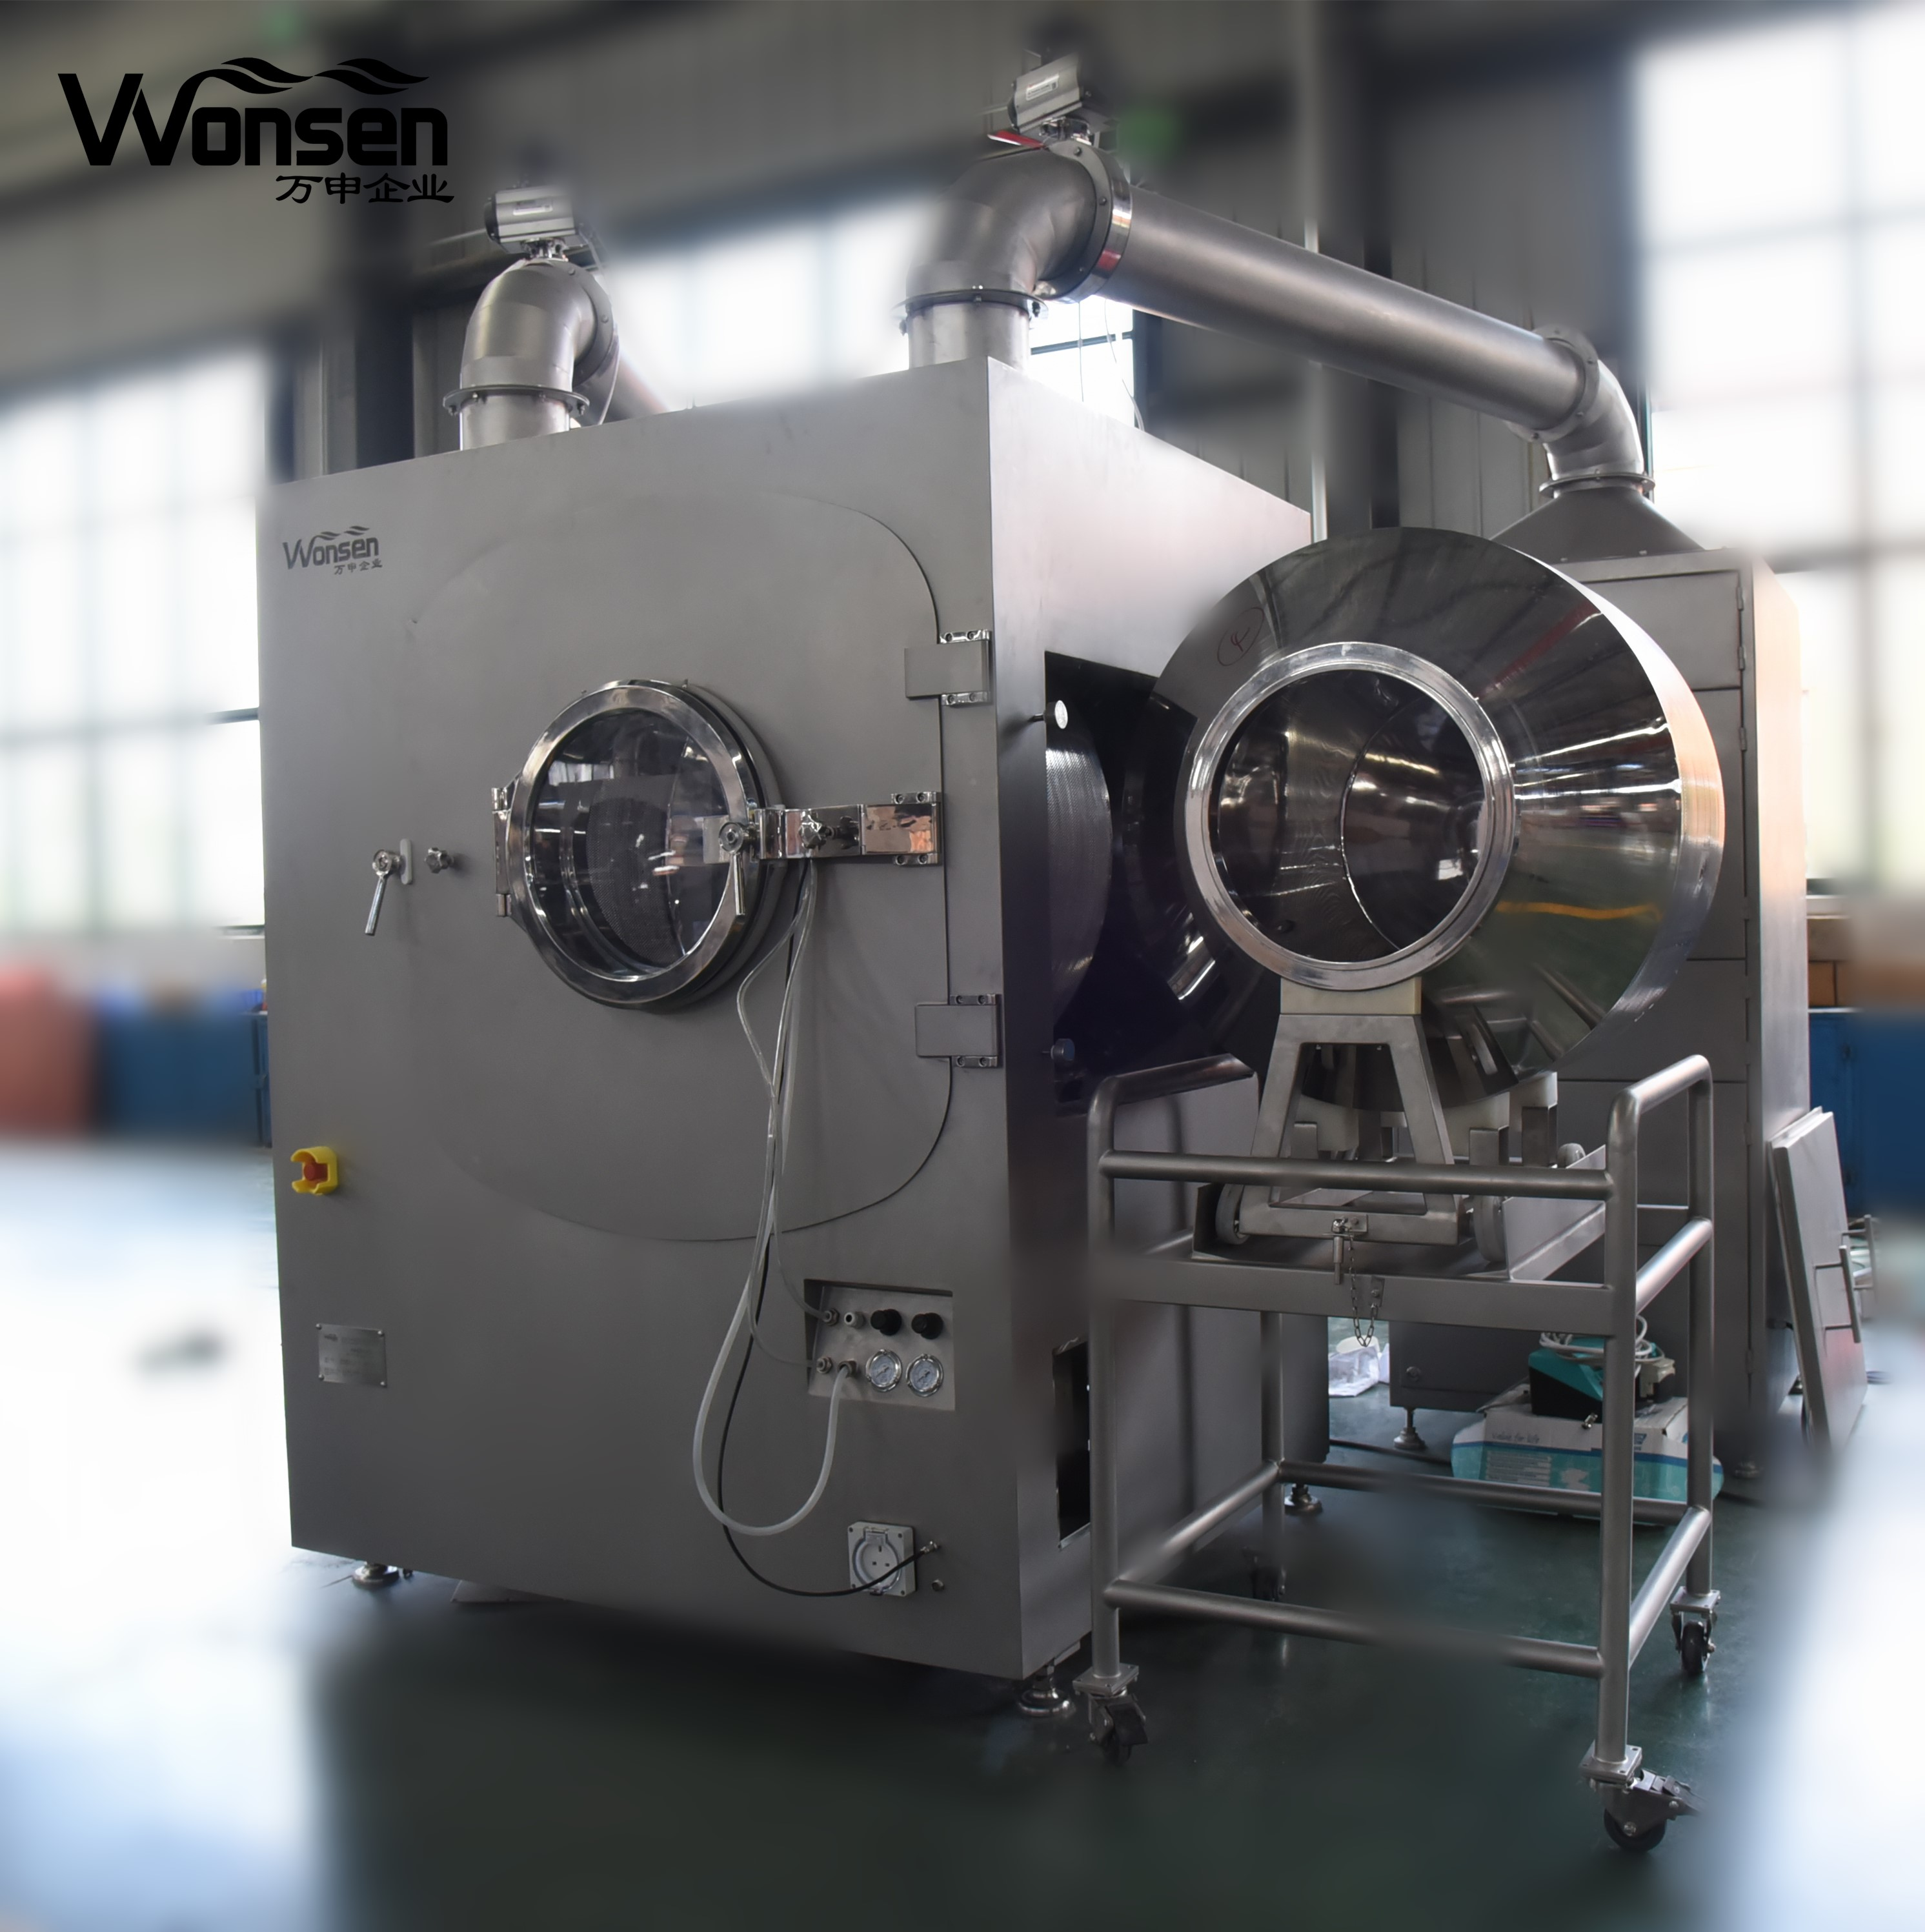 Hot selling new type tablet pills sugar coating machine or tablet film coating machine Manufacturers, Hot selling new type tablet pills sugar coating machine or tablet film coating machine Factory, Supply Hot selling new type tablet pills sugar coating machine or tablet film coating machine